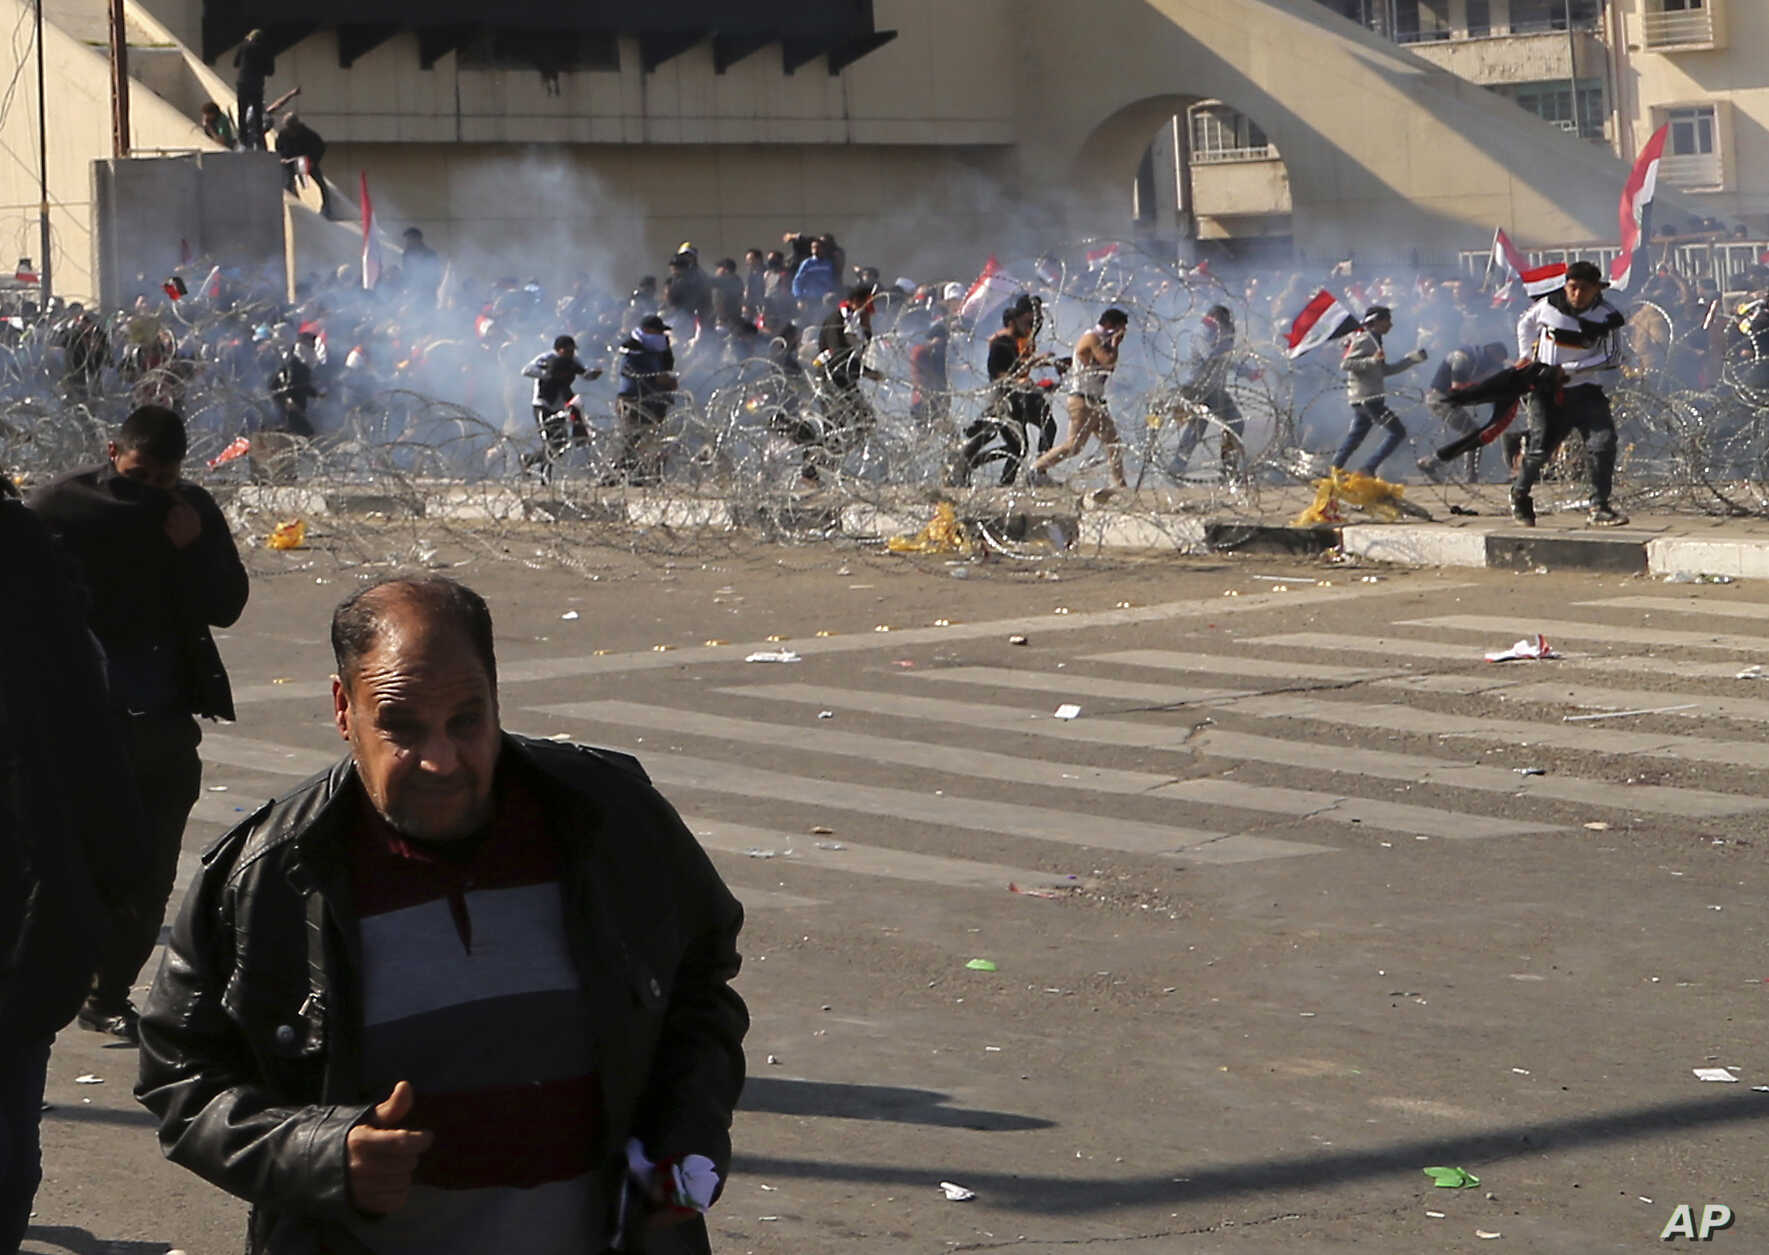 Protesters run from tear gas fired by security forces, during a demonstration by followers of Iraq's influential Shi'ite cleric Muqtada al-Sadr, in Baghdad, Iraq, Feb. 11, 2017.